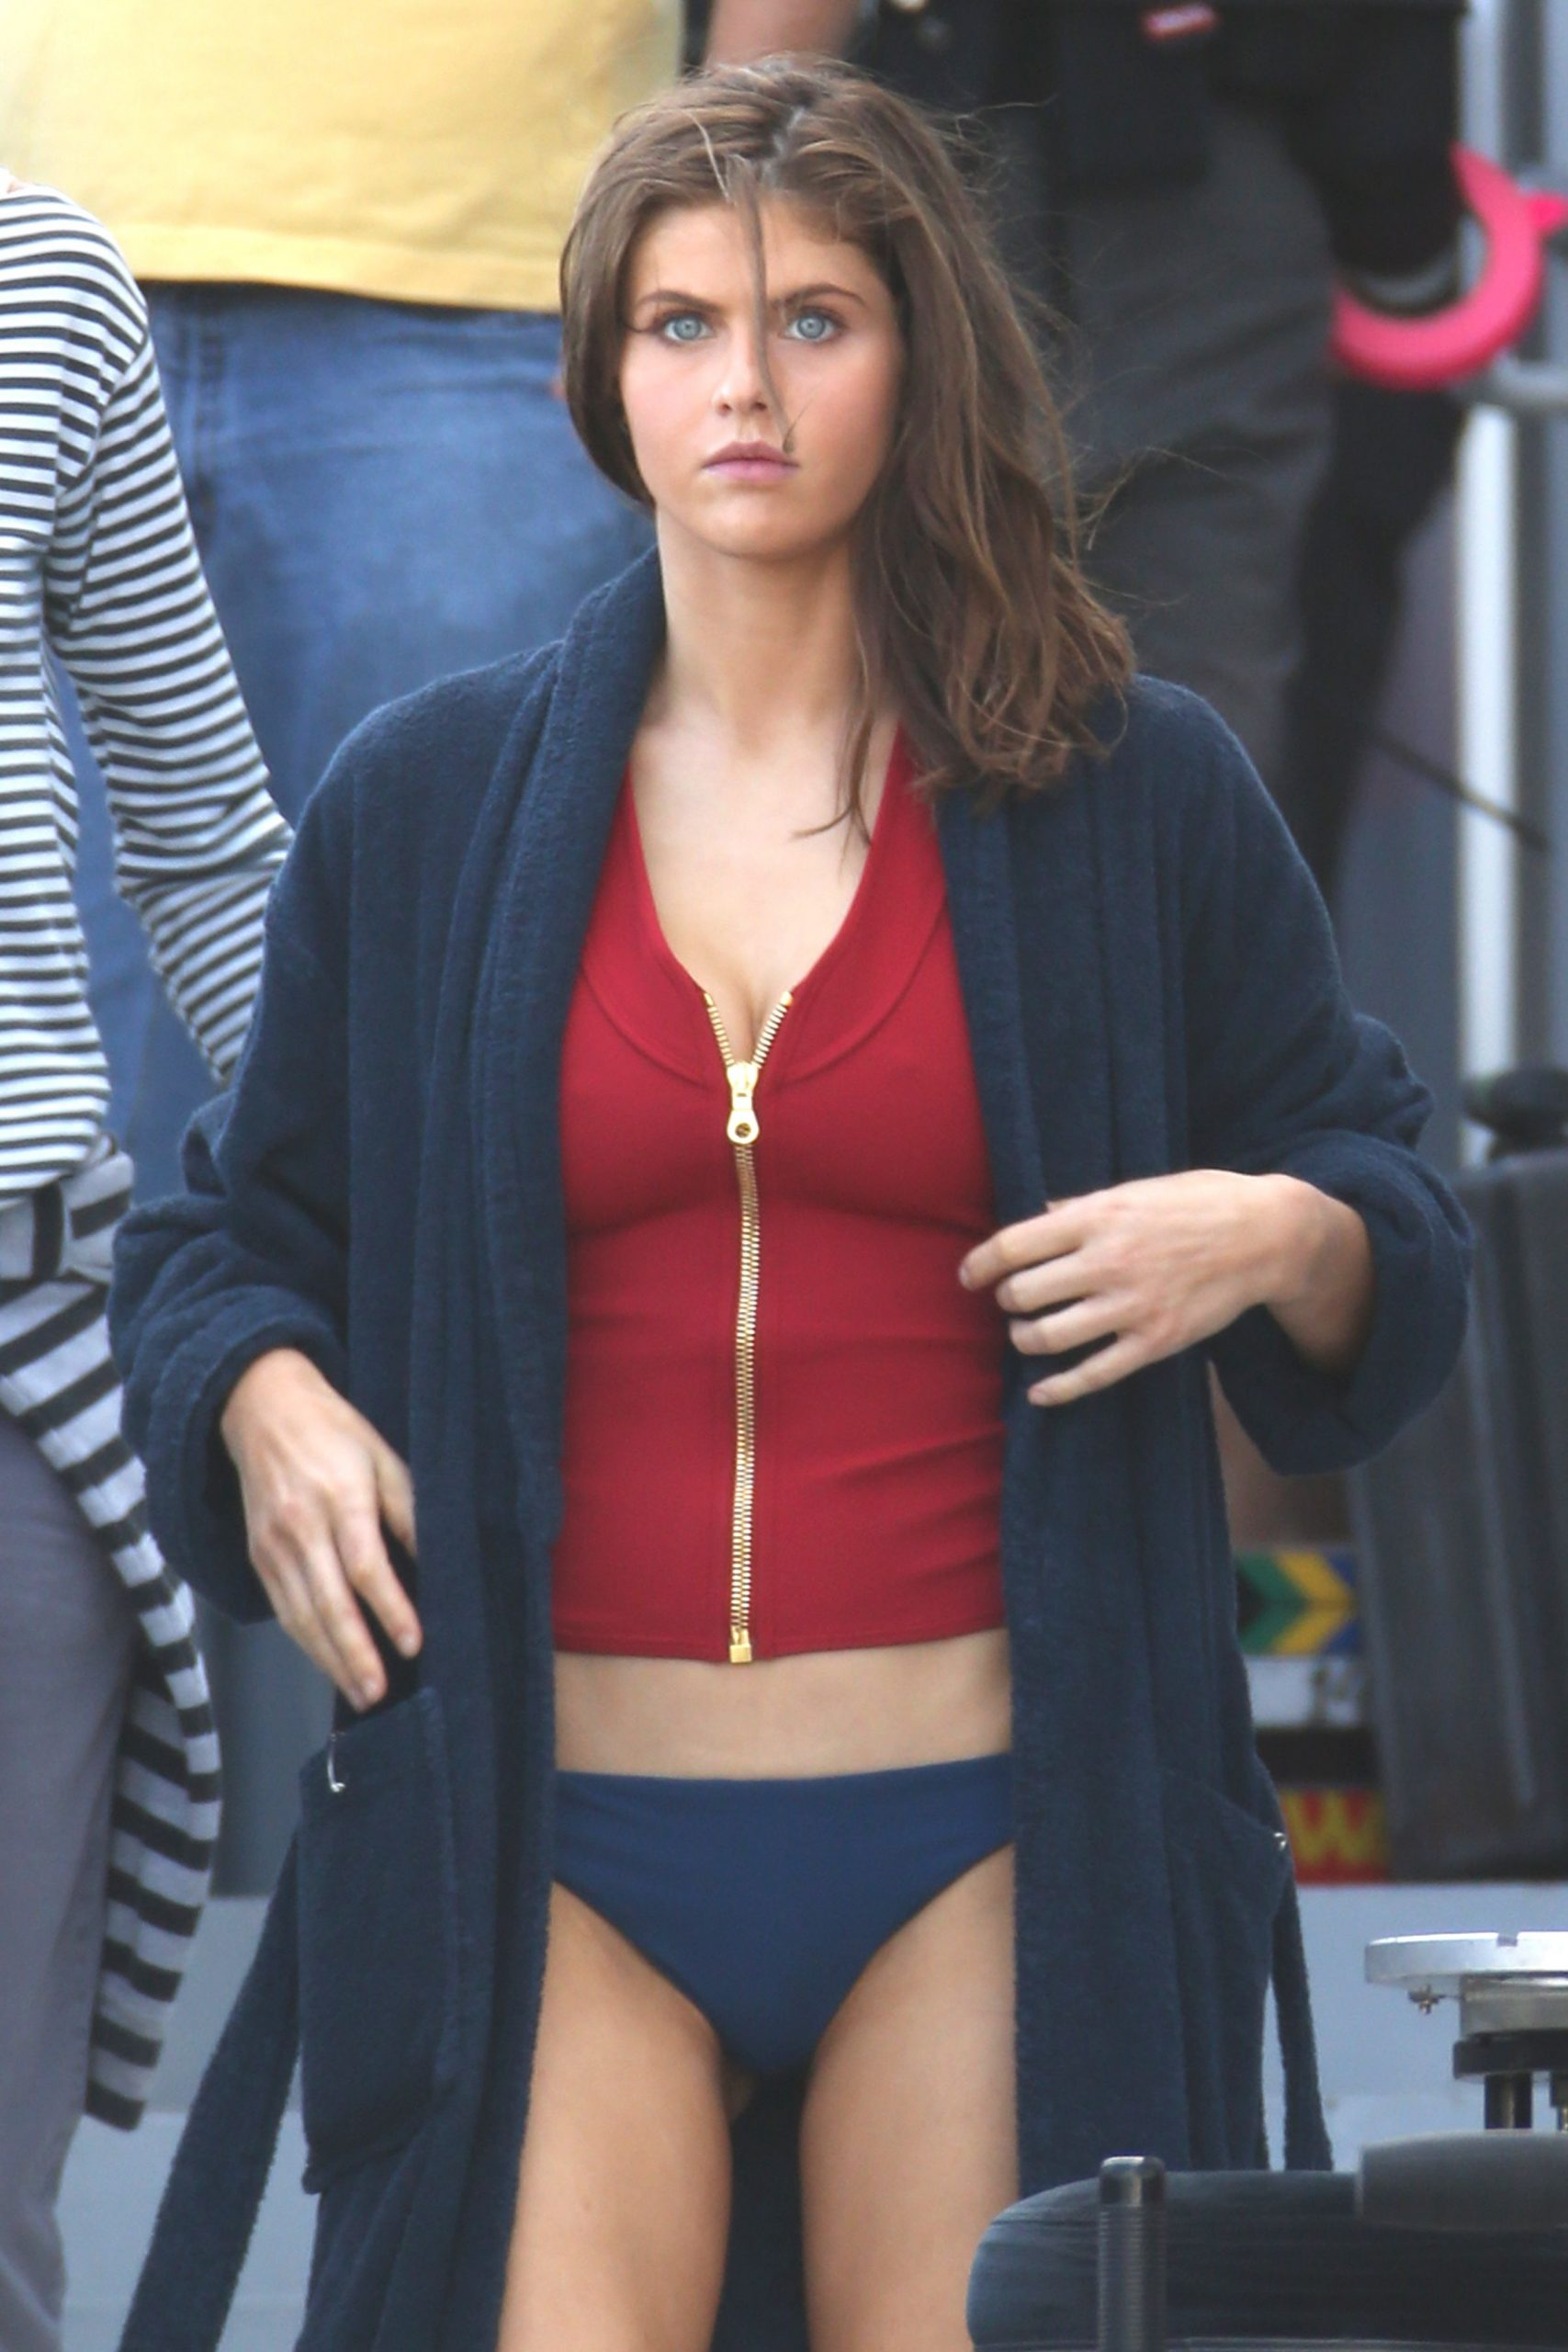 Pic Viral: Alexandra Daddario Spotted Kissing her New Boyfriend Openly